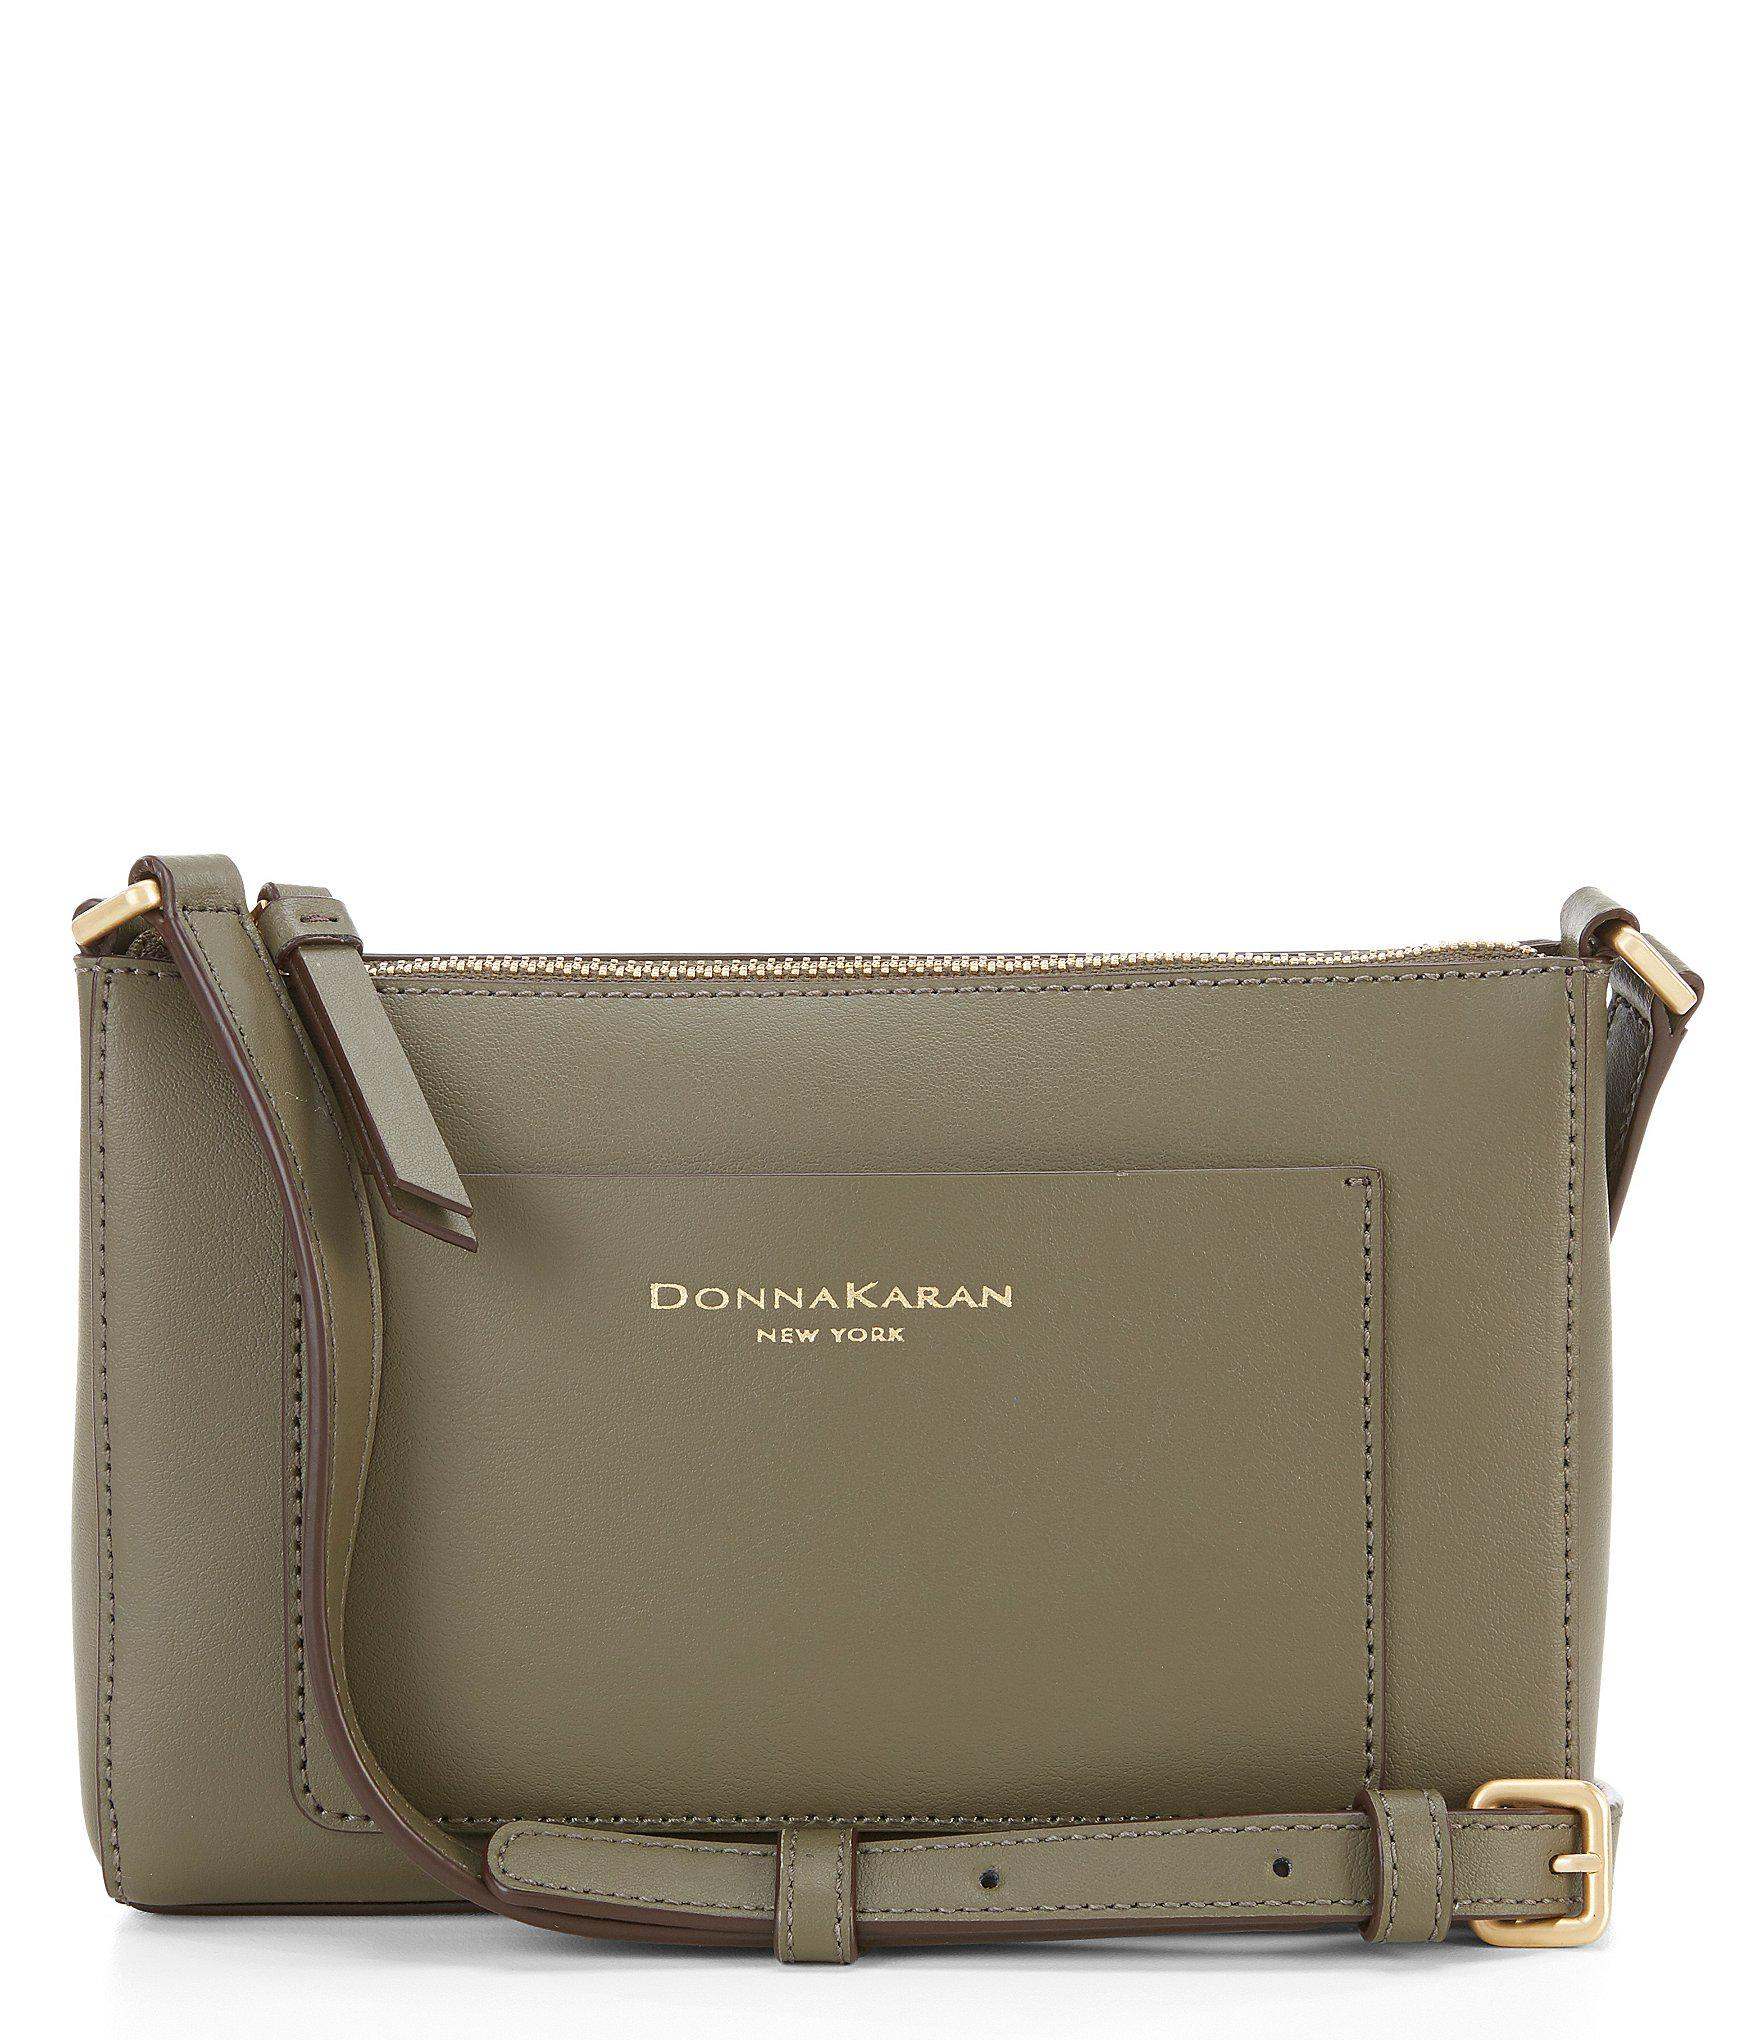 b7e00f996 Gallery. Previously sold at: Dillard's · Women's Cross Body Bags